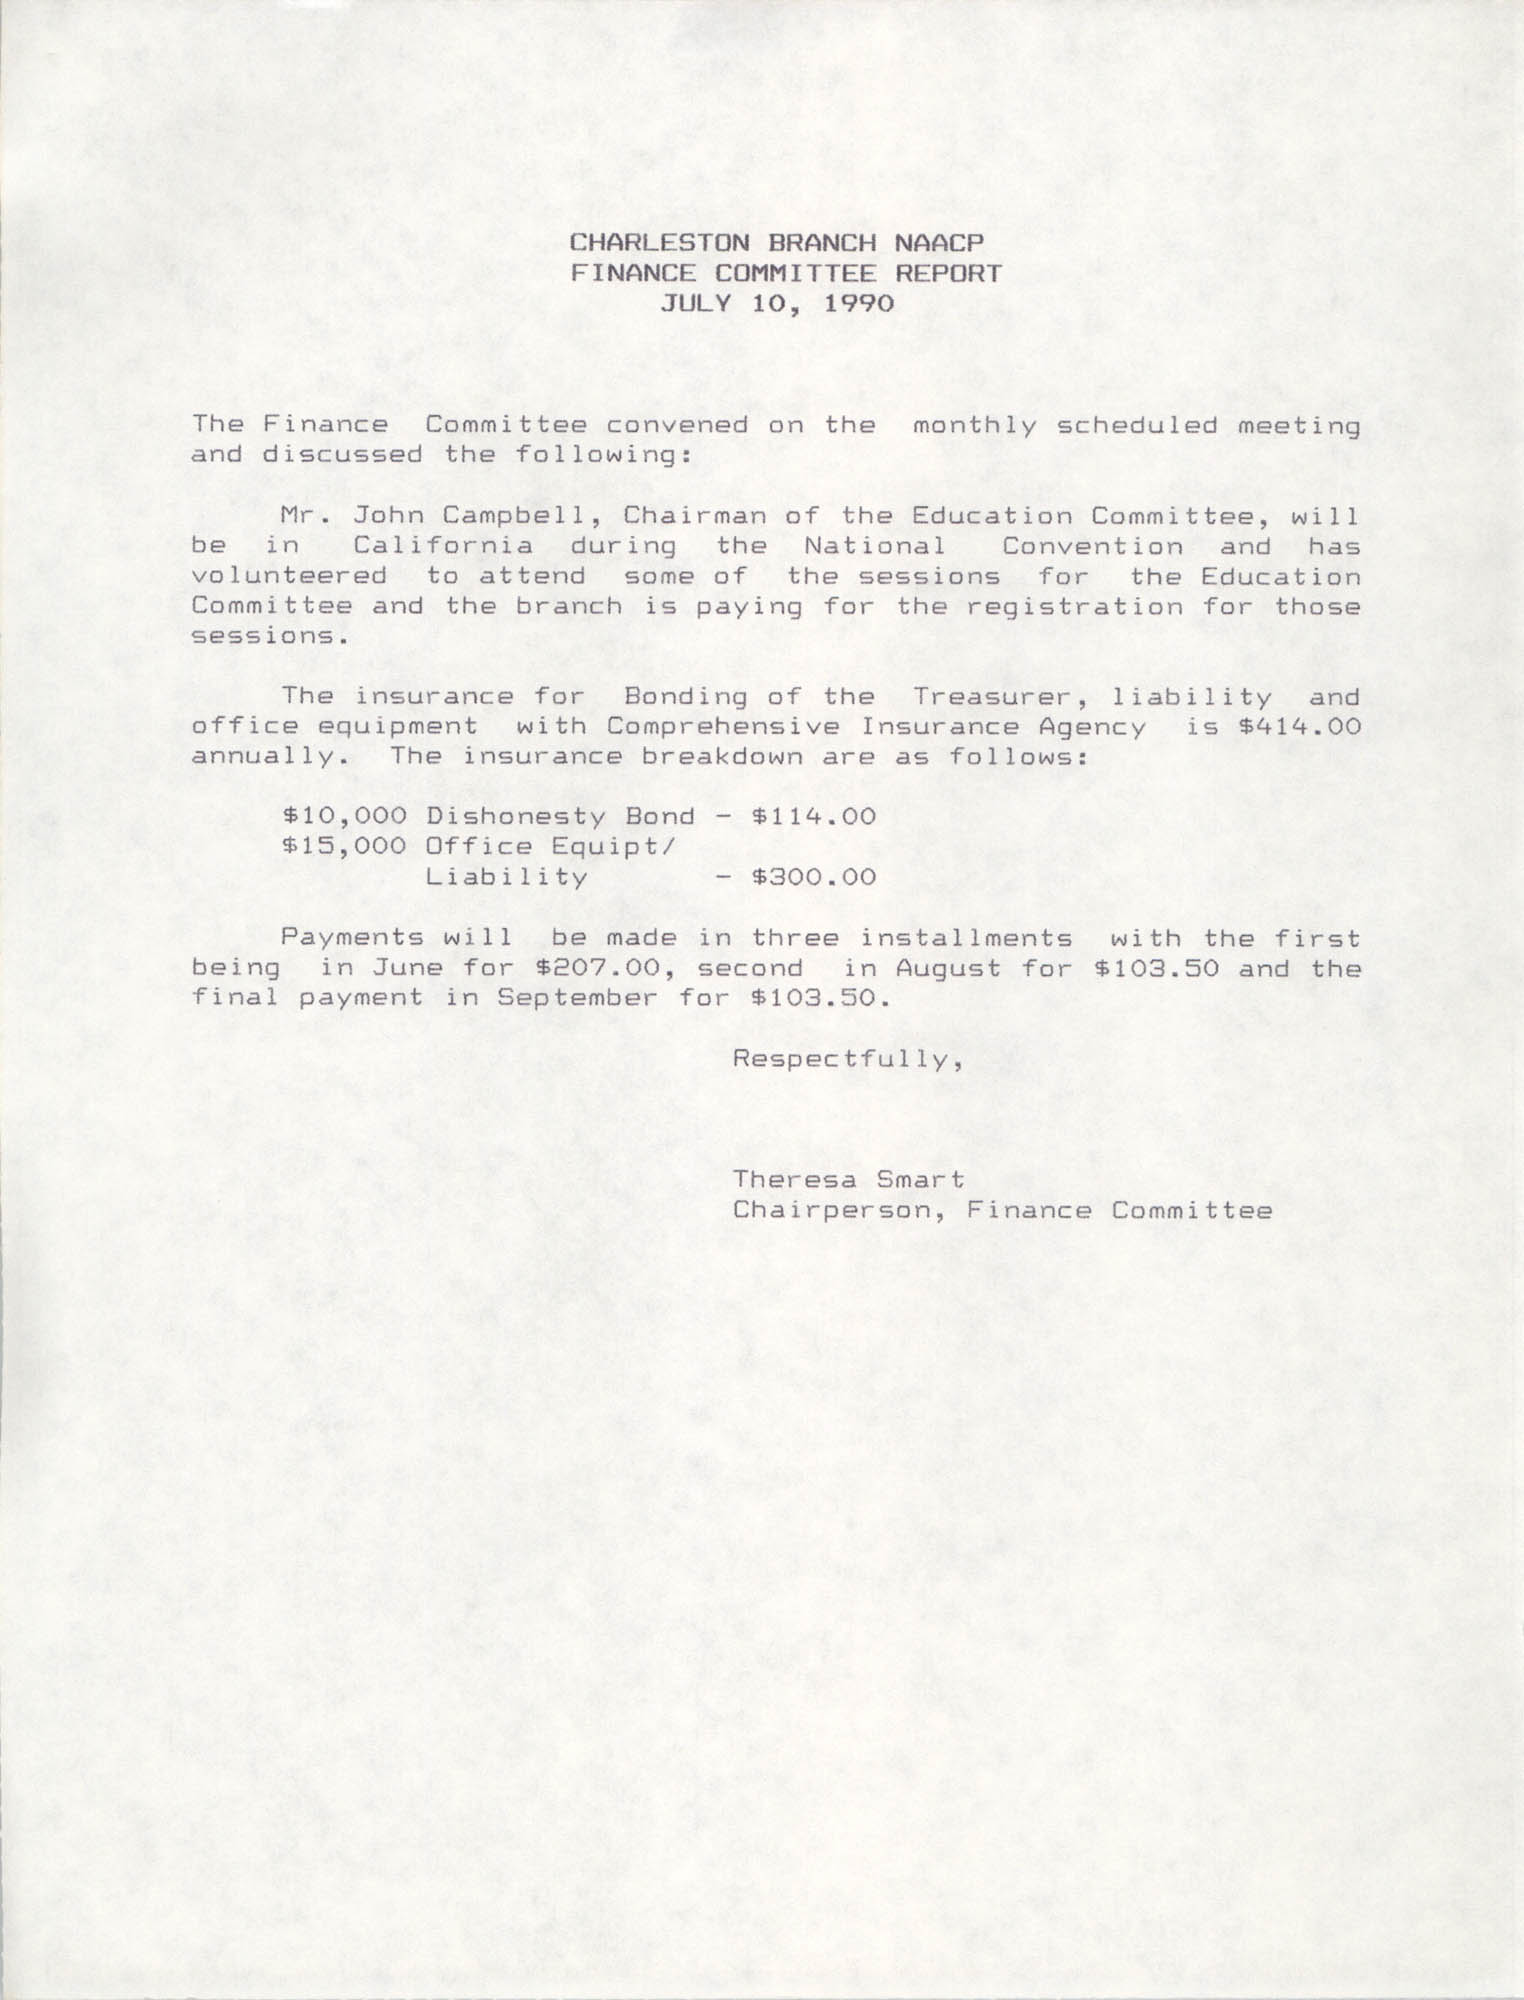 Charleston Branch of the NAACP Finance Committee Report, July 10, 1990